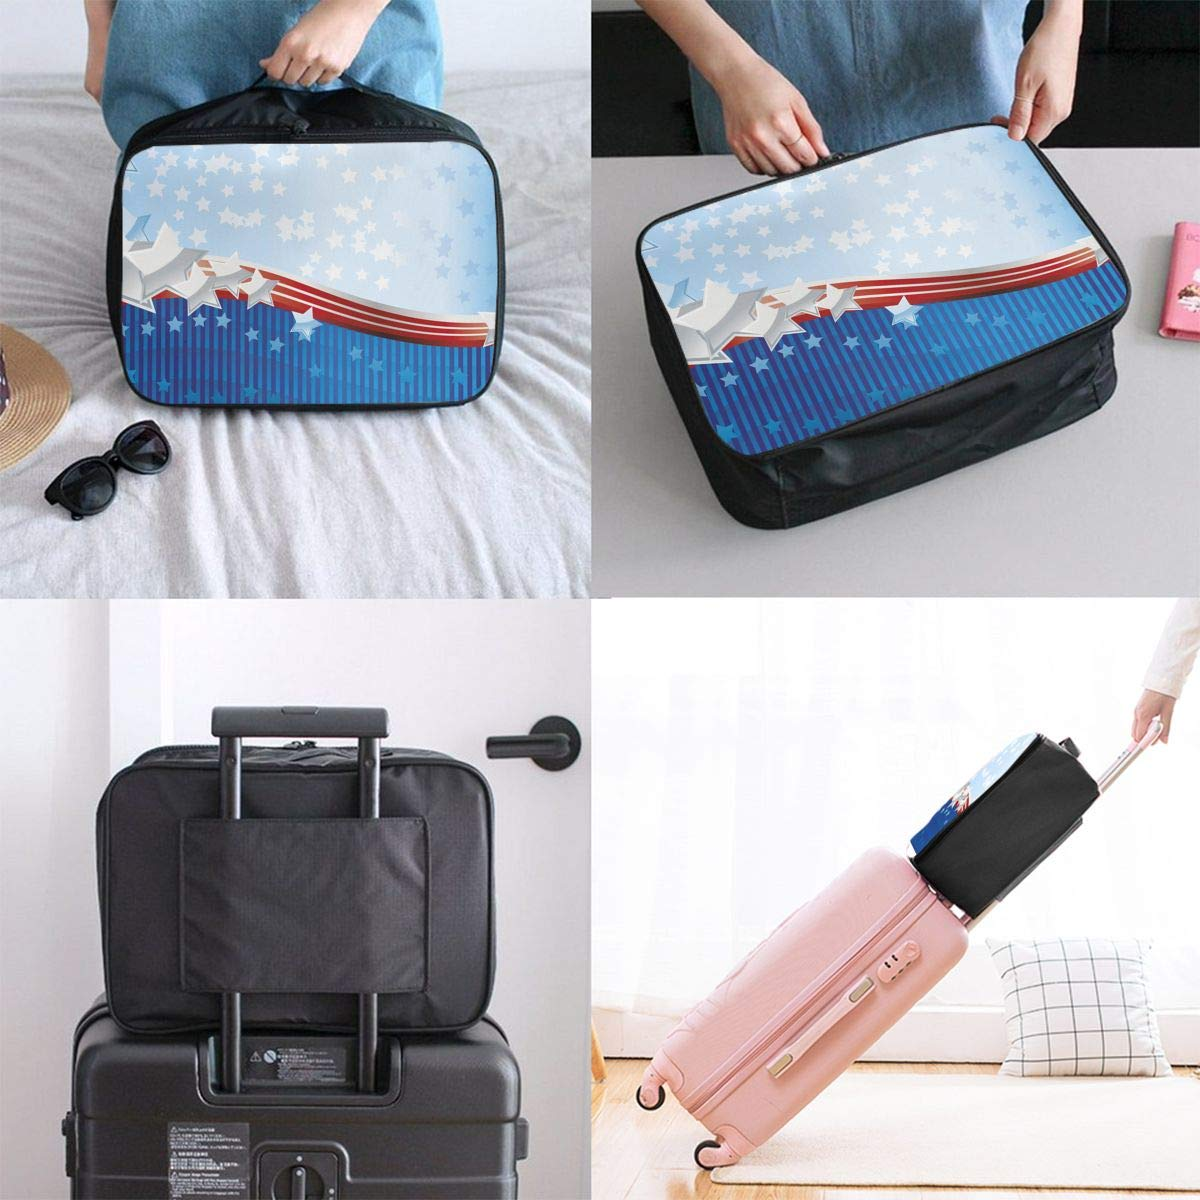 Travel Luggage Duffle Bag Lightweight Portable Handbag American Flag Large Capacity Waterproof Foldable Storage Tote